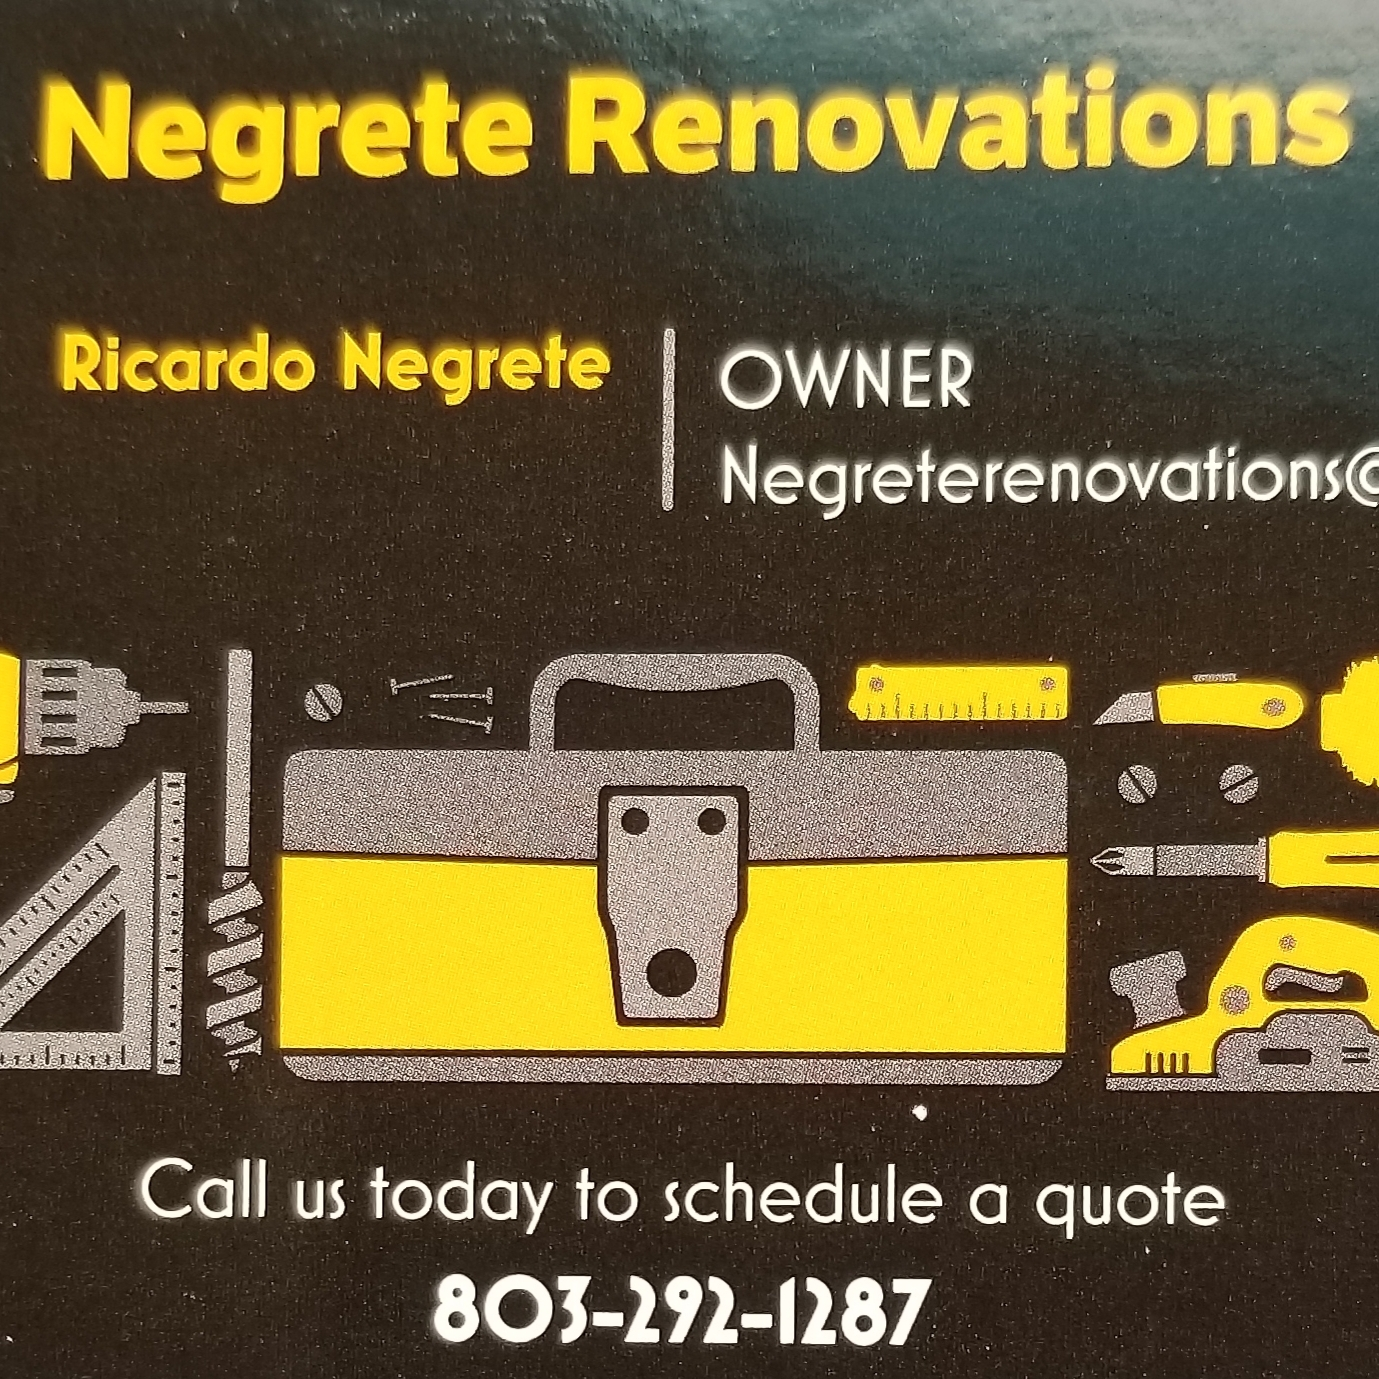 Negrete Renovations